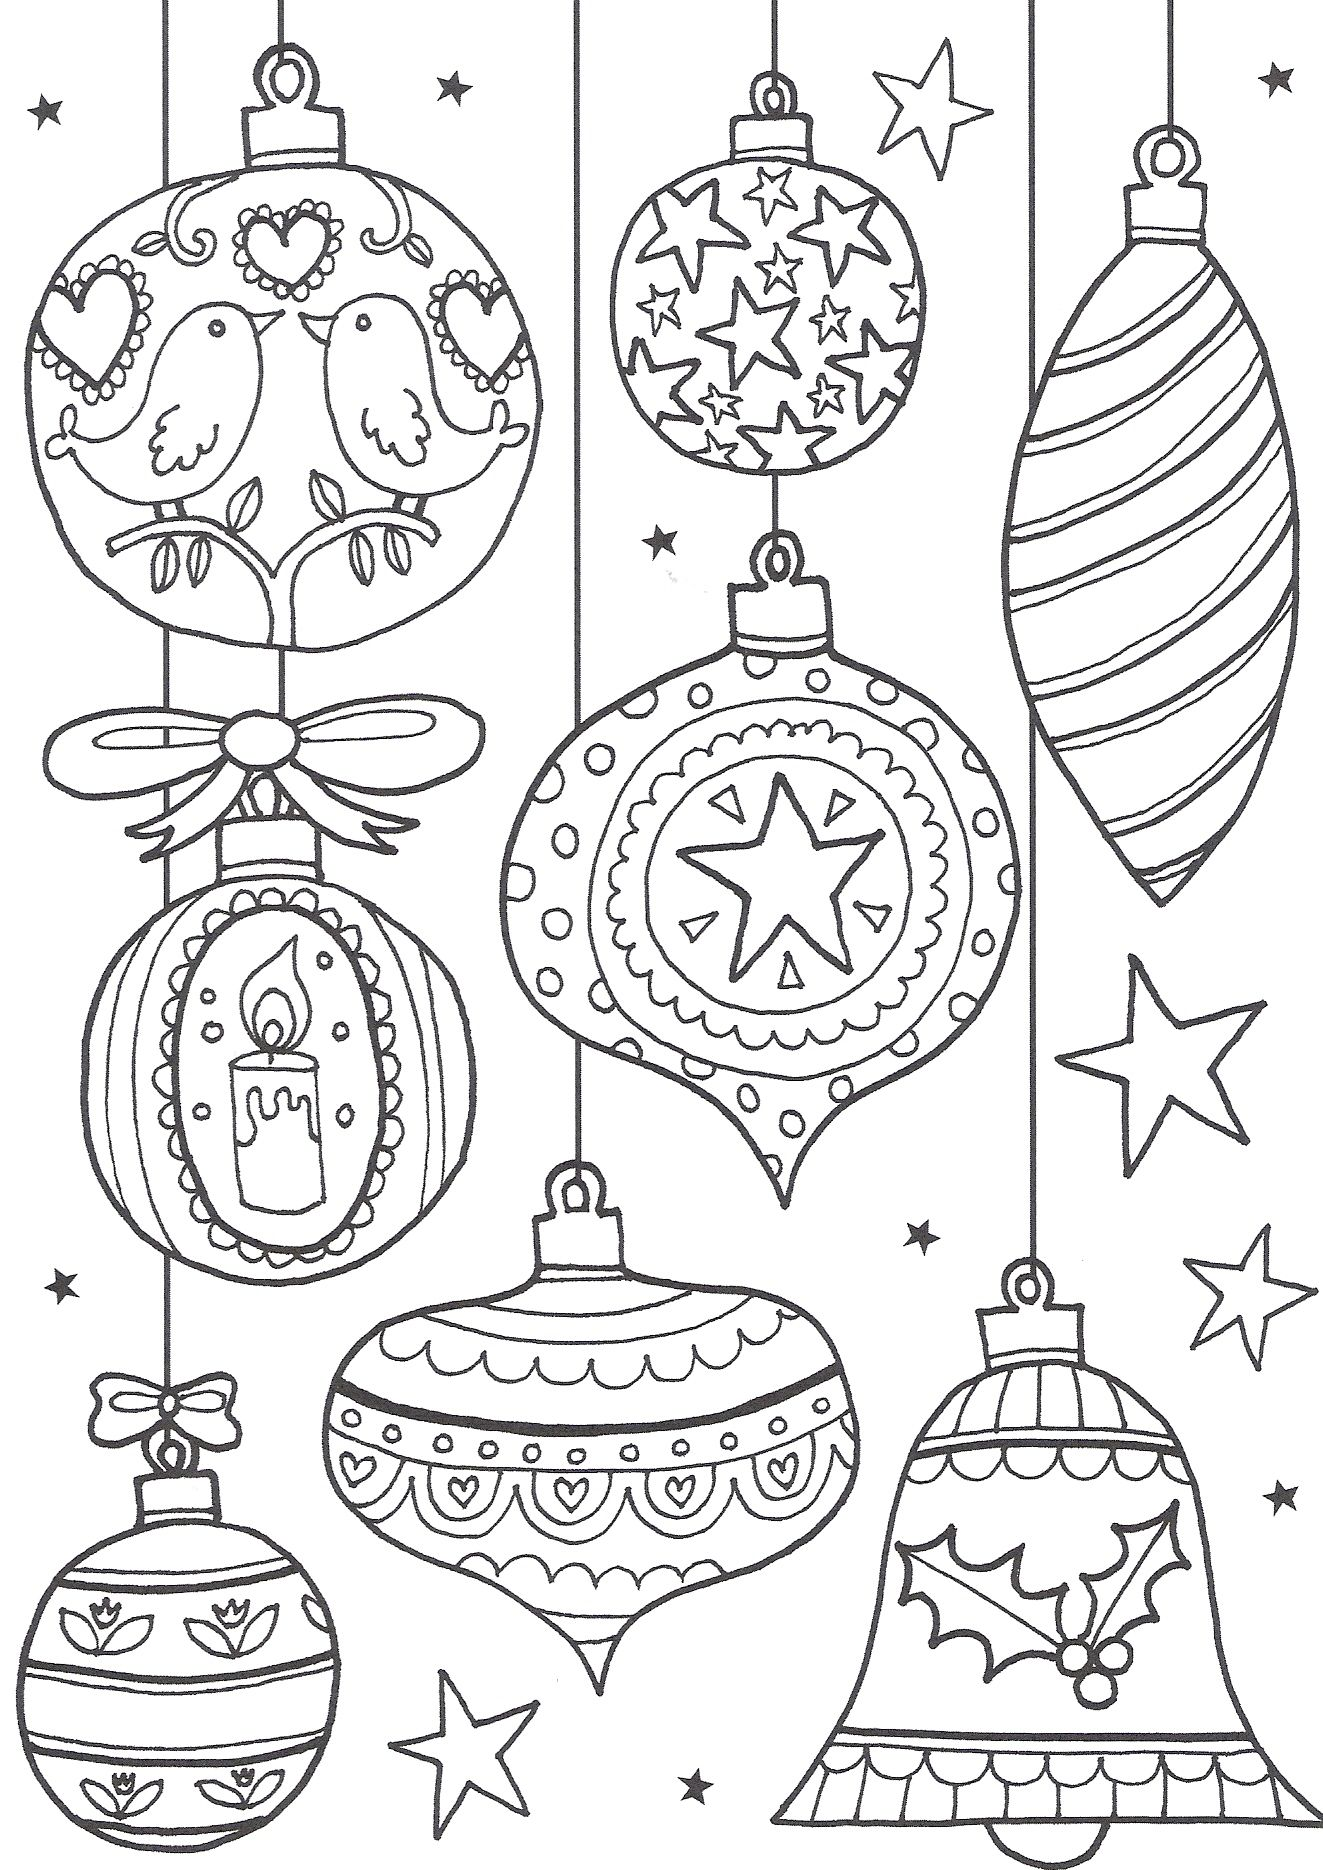 Christmas Colouring Pages Baubles With Free For Adults The Ultimate Roundup